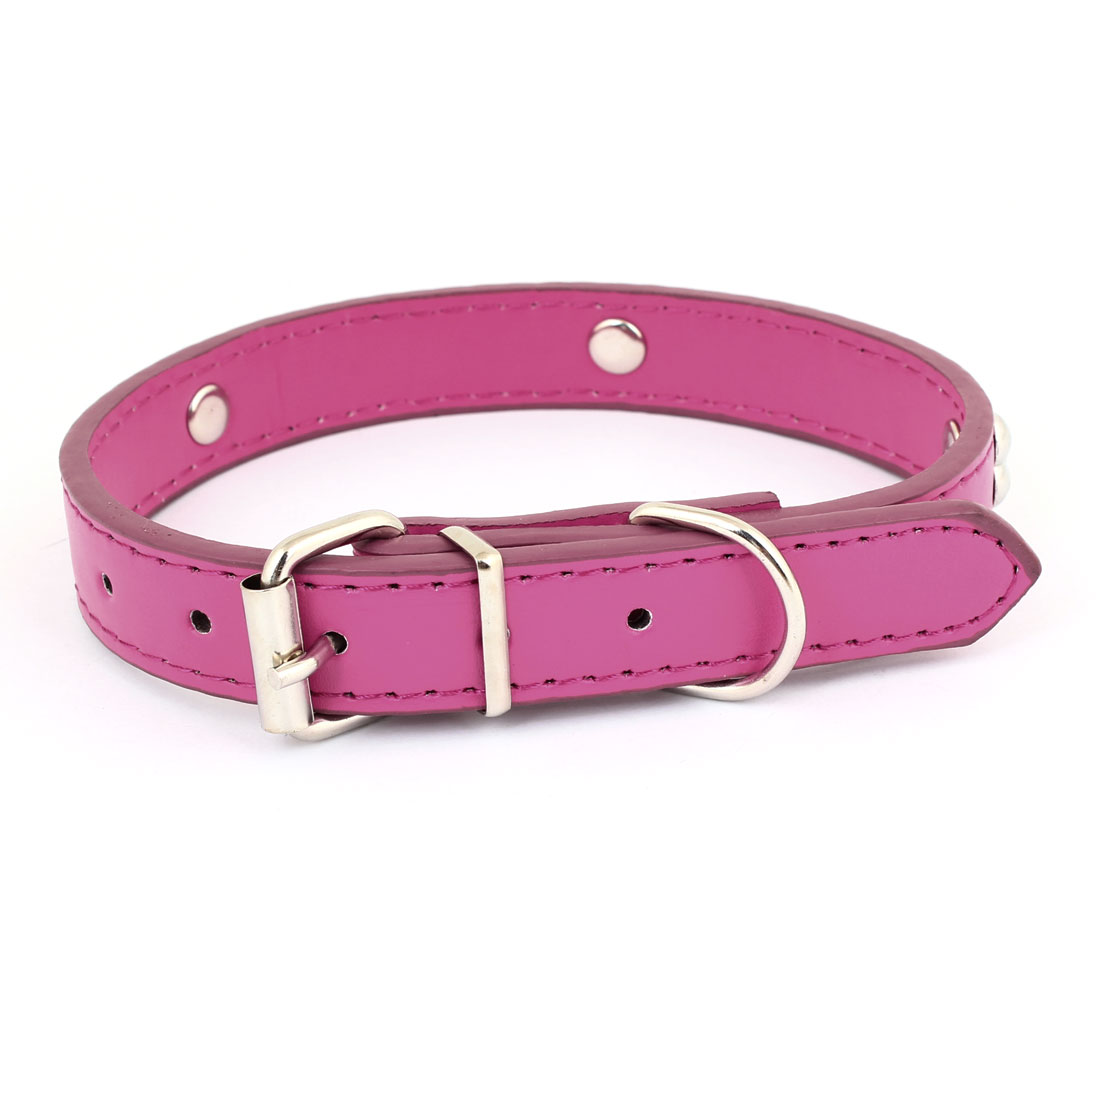 Metal Single Pin Buckle 2cm Wide Bone Detail Faux Leather Pet Dog Collar Fuchsia